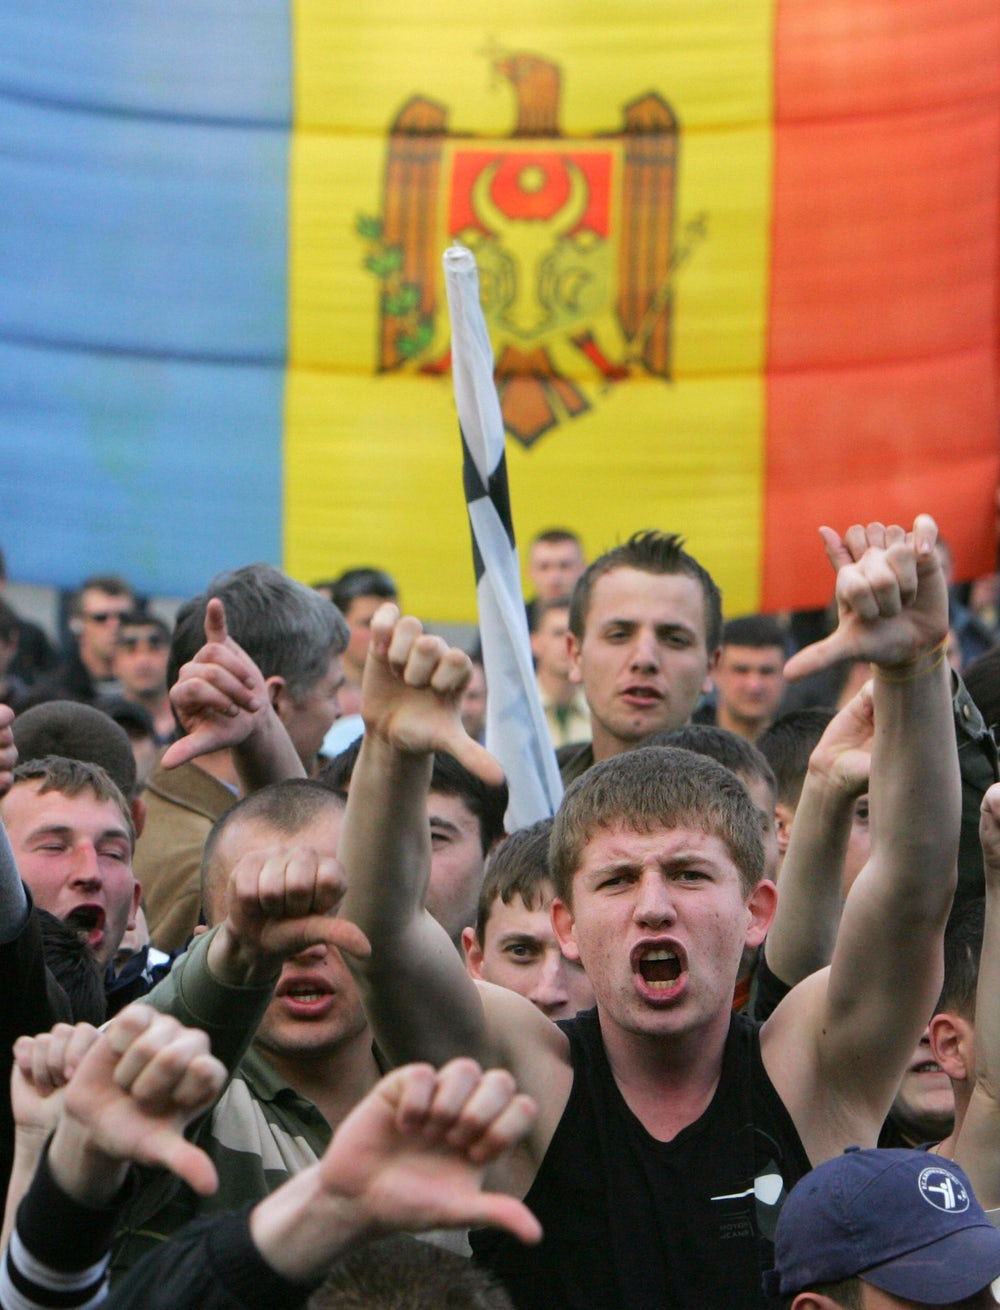 Protesters shout during a rally near a government building in Chisinau on April 8, 2009.